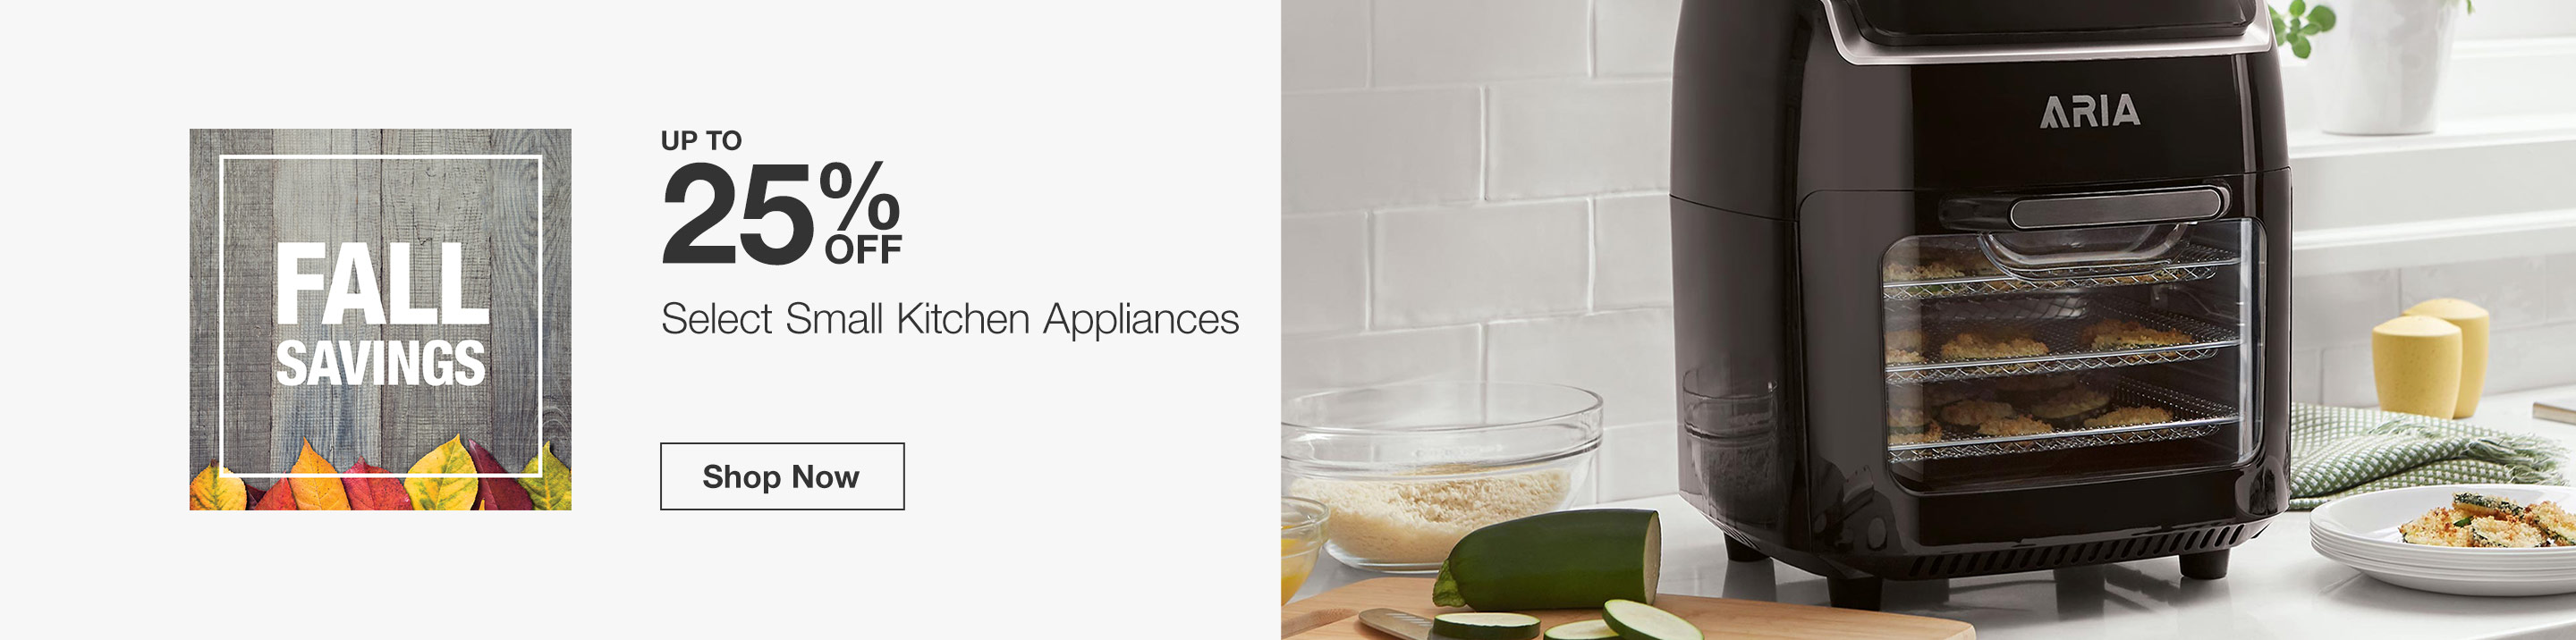 Up to 25% Off Select Small Kitchen Appliances